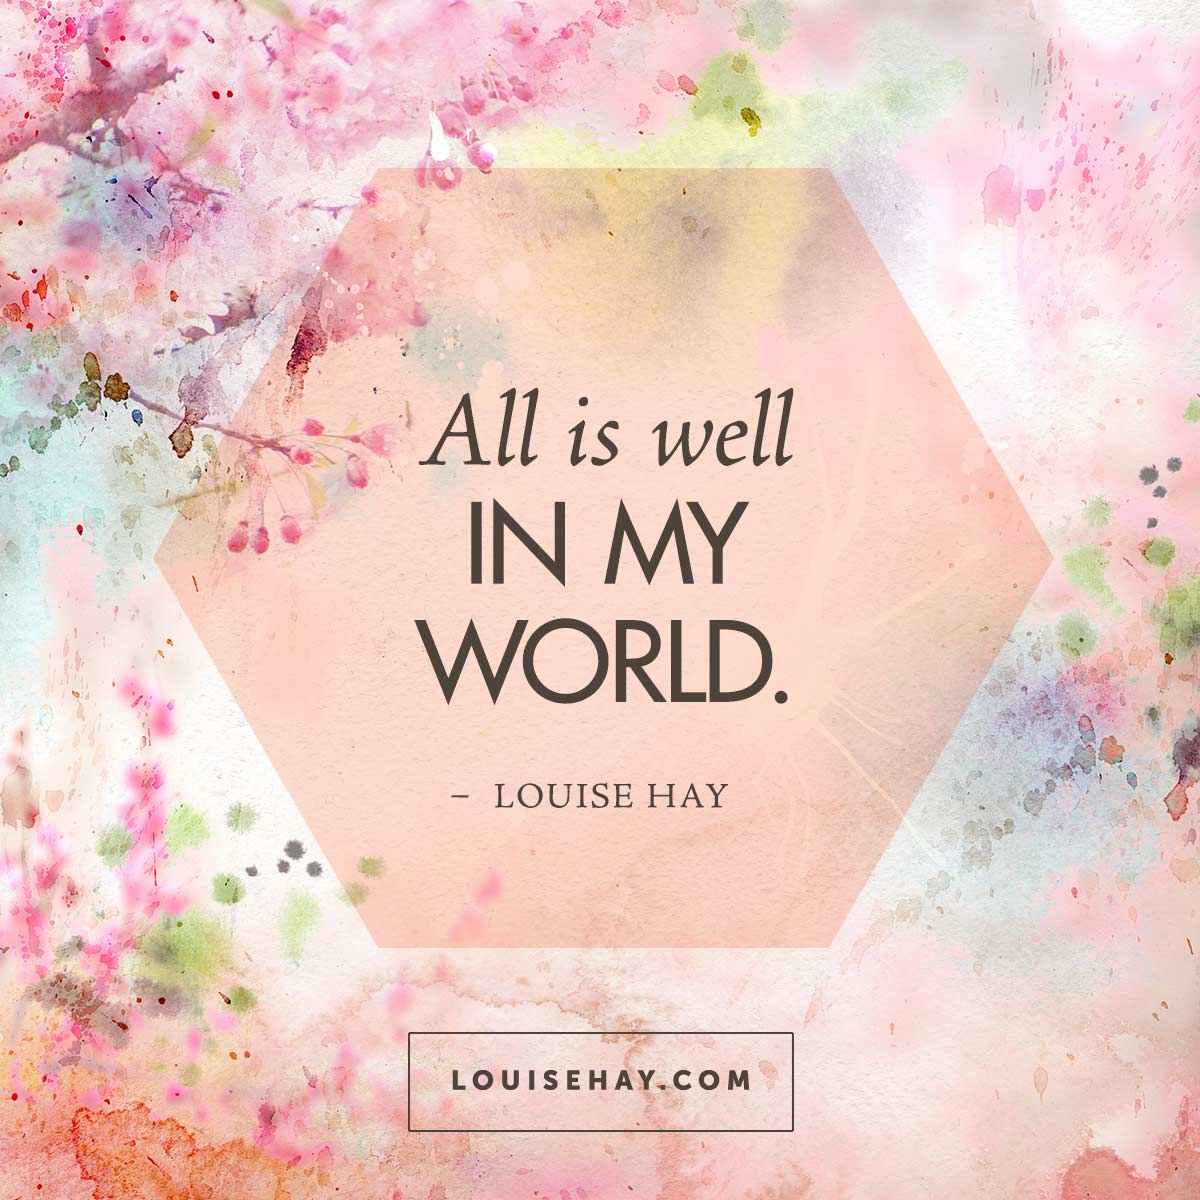 Louise Hay Wallpapers Wallpaper Cave